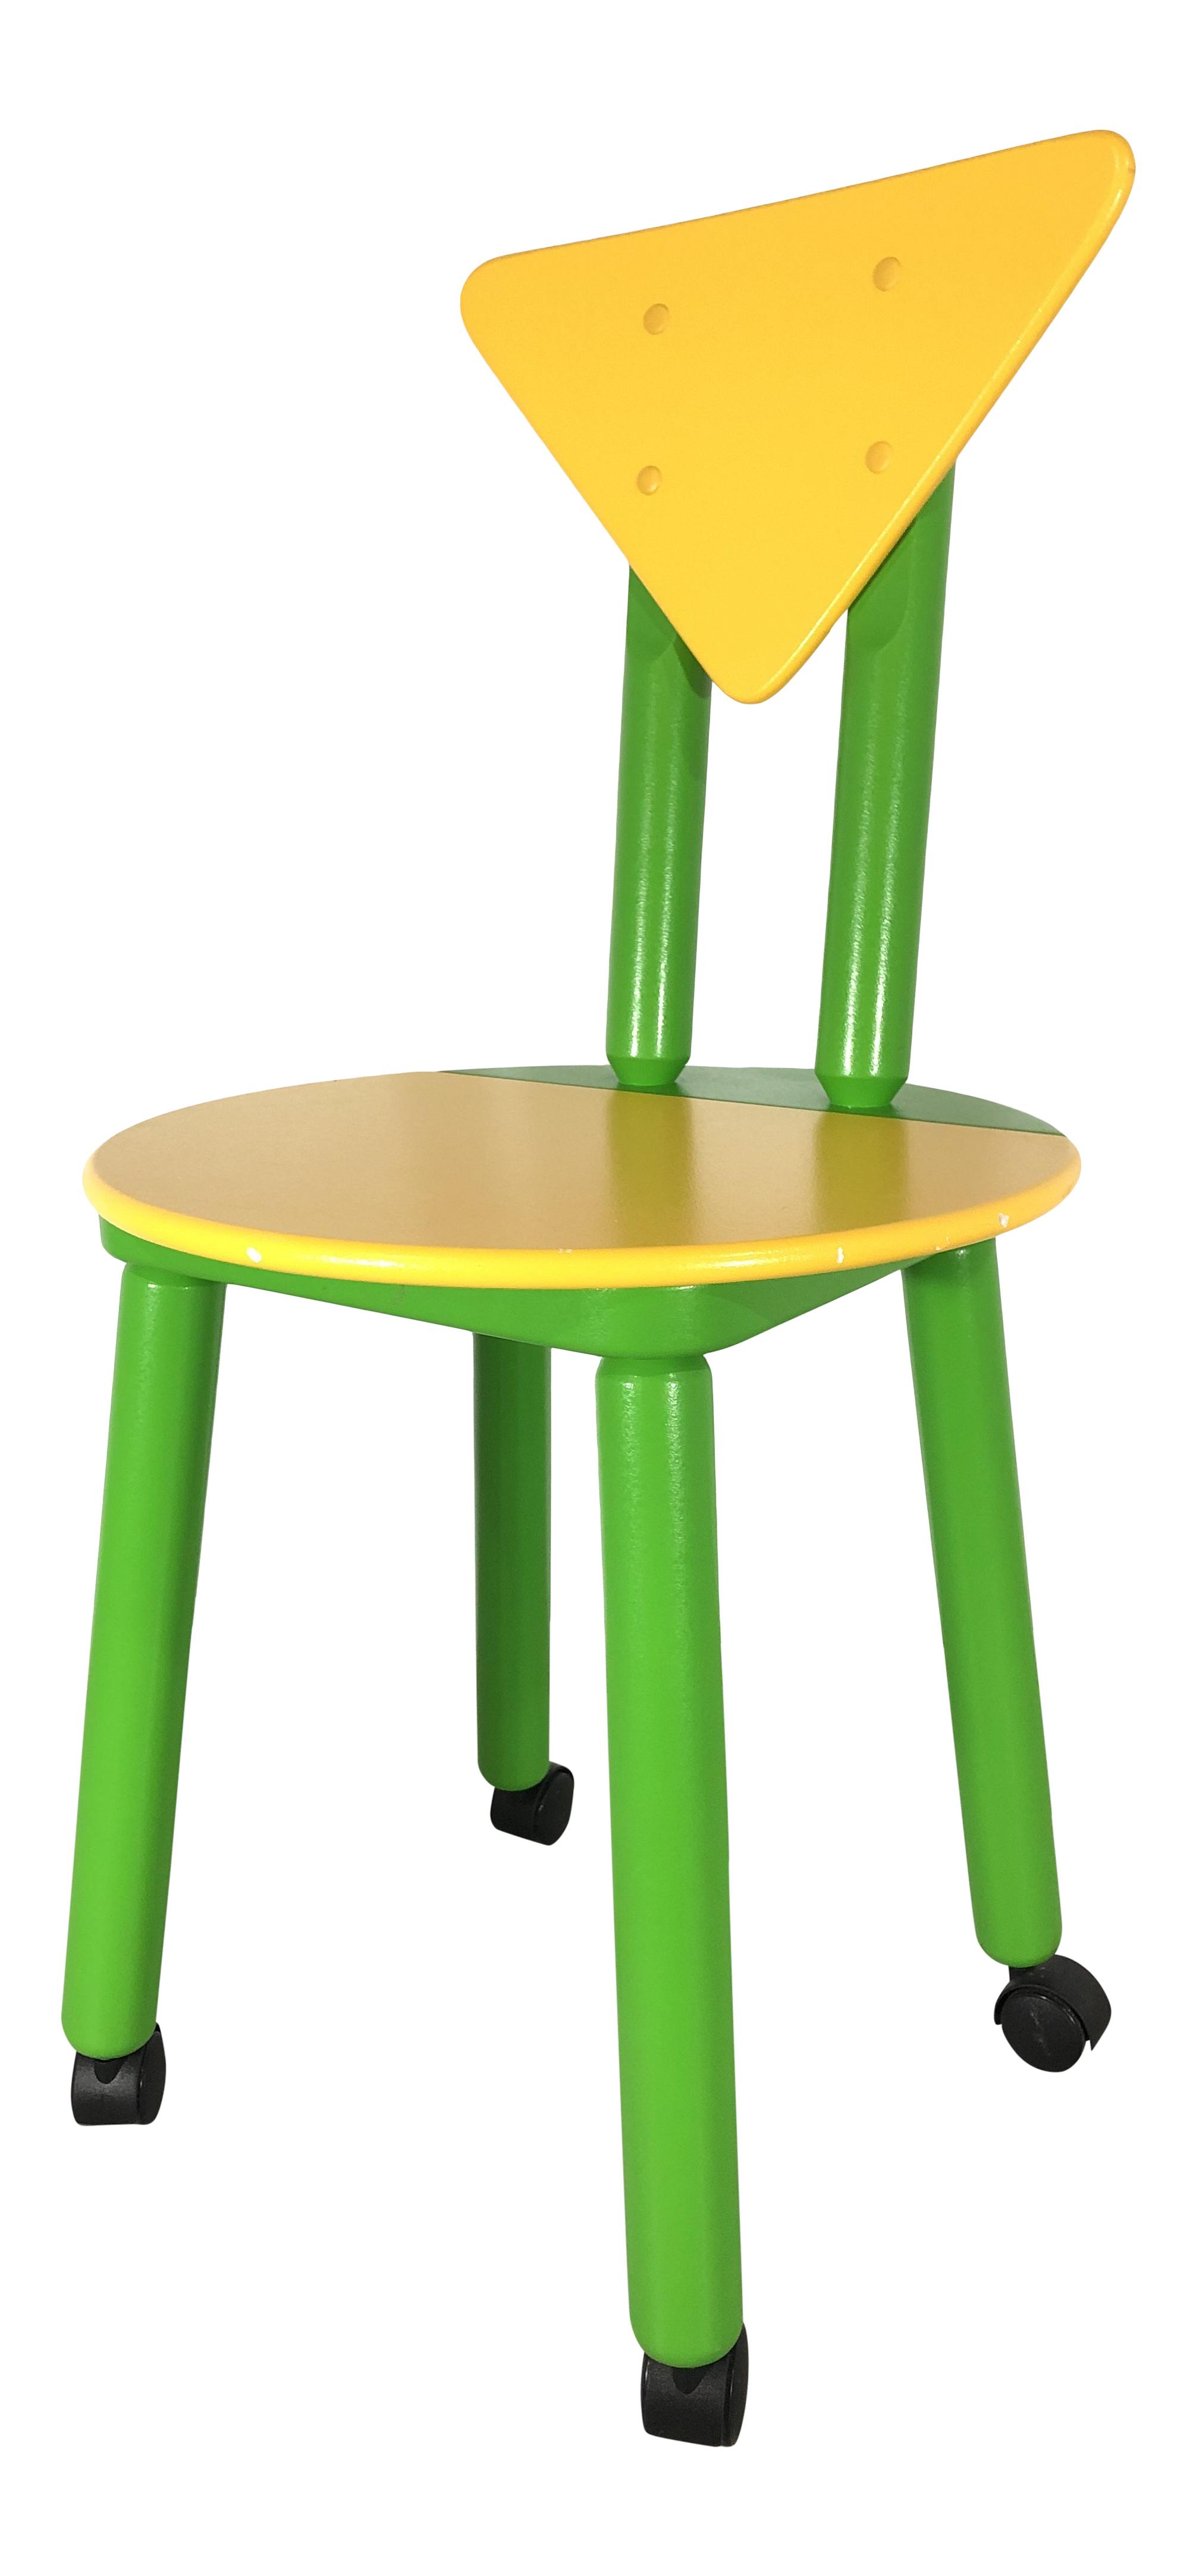 Enjoyable 1990S Post Modern Memphis Childrens Desk Chair Gmtry Best Dining Table And Chair Ideas Images Gmtryco